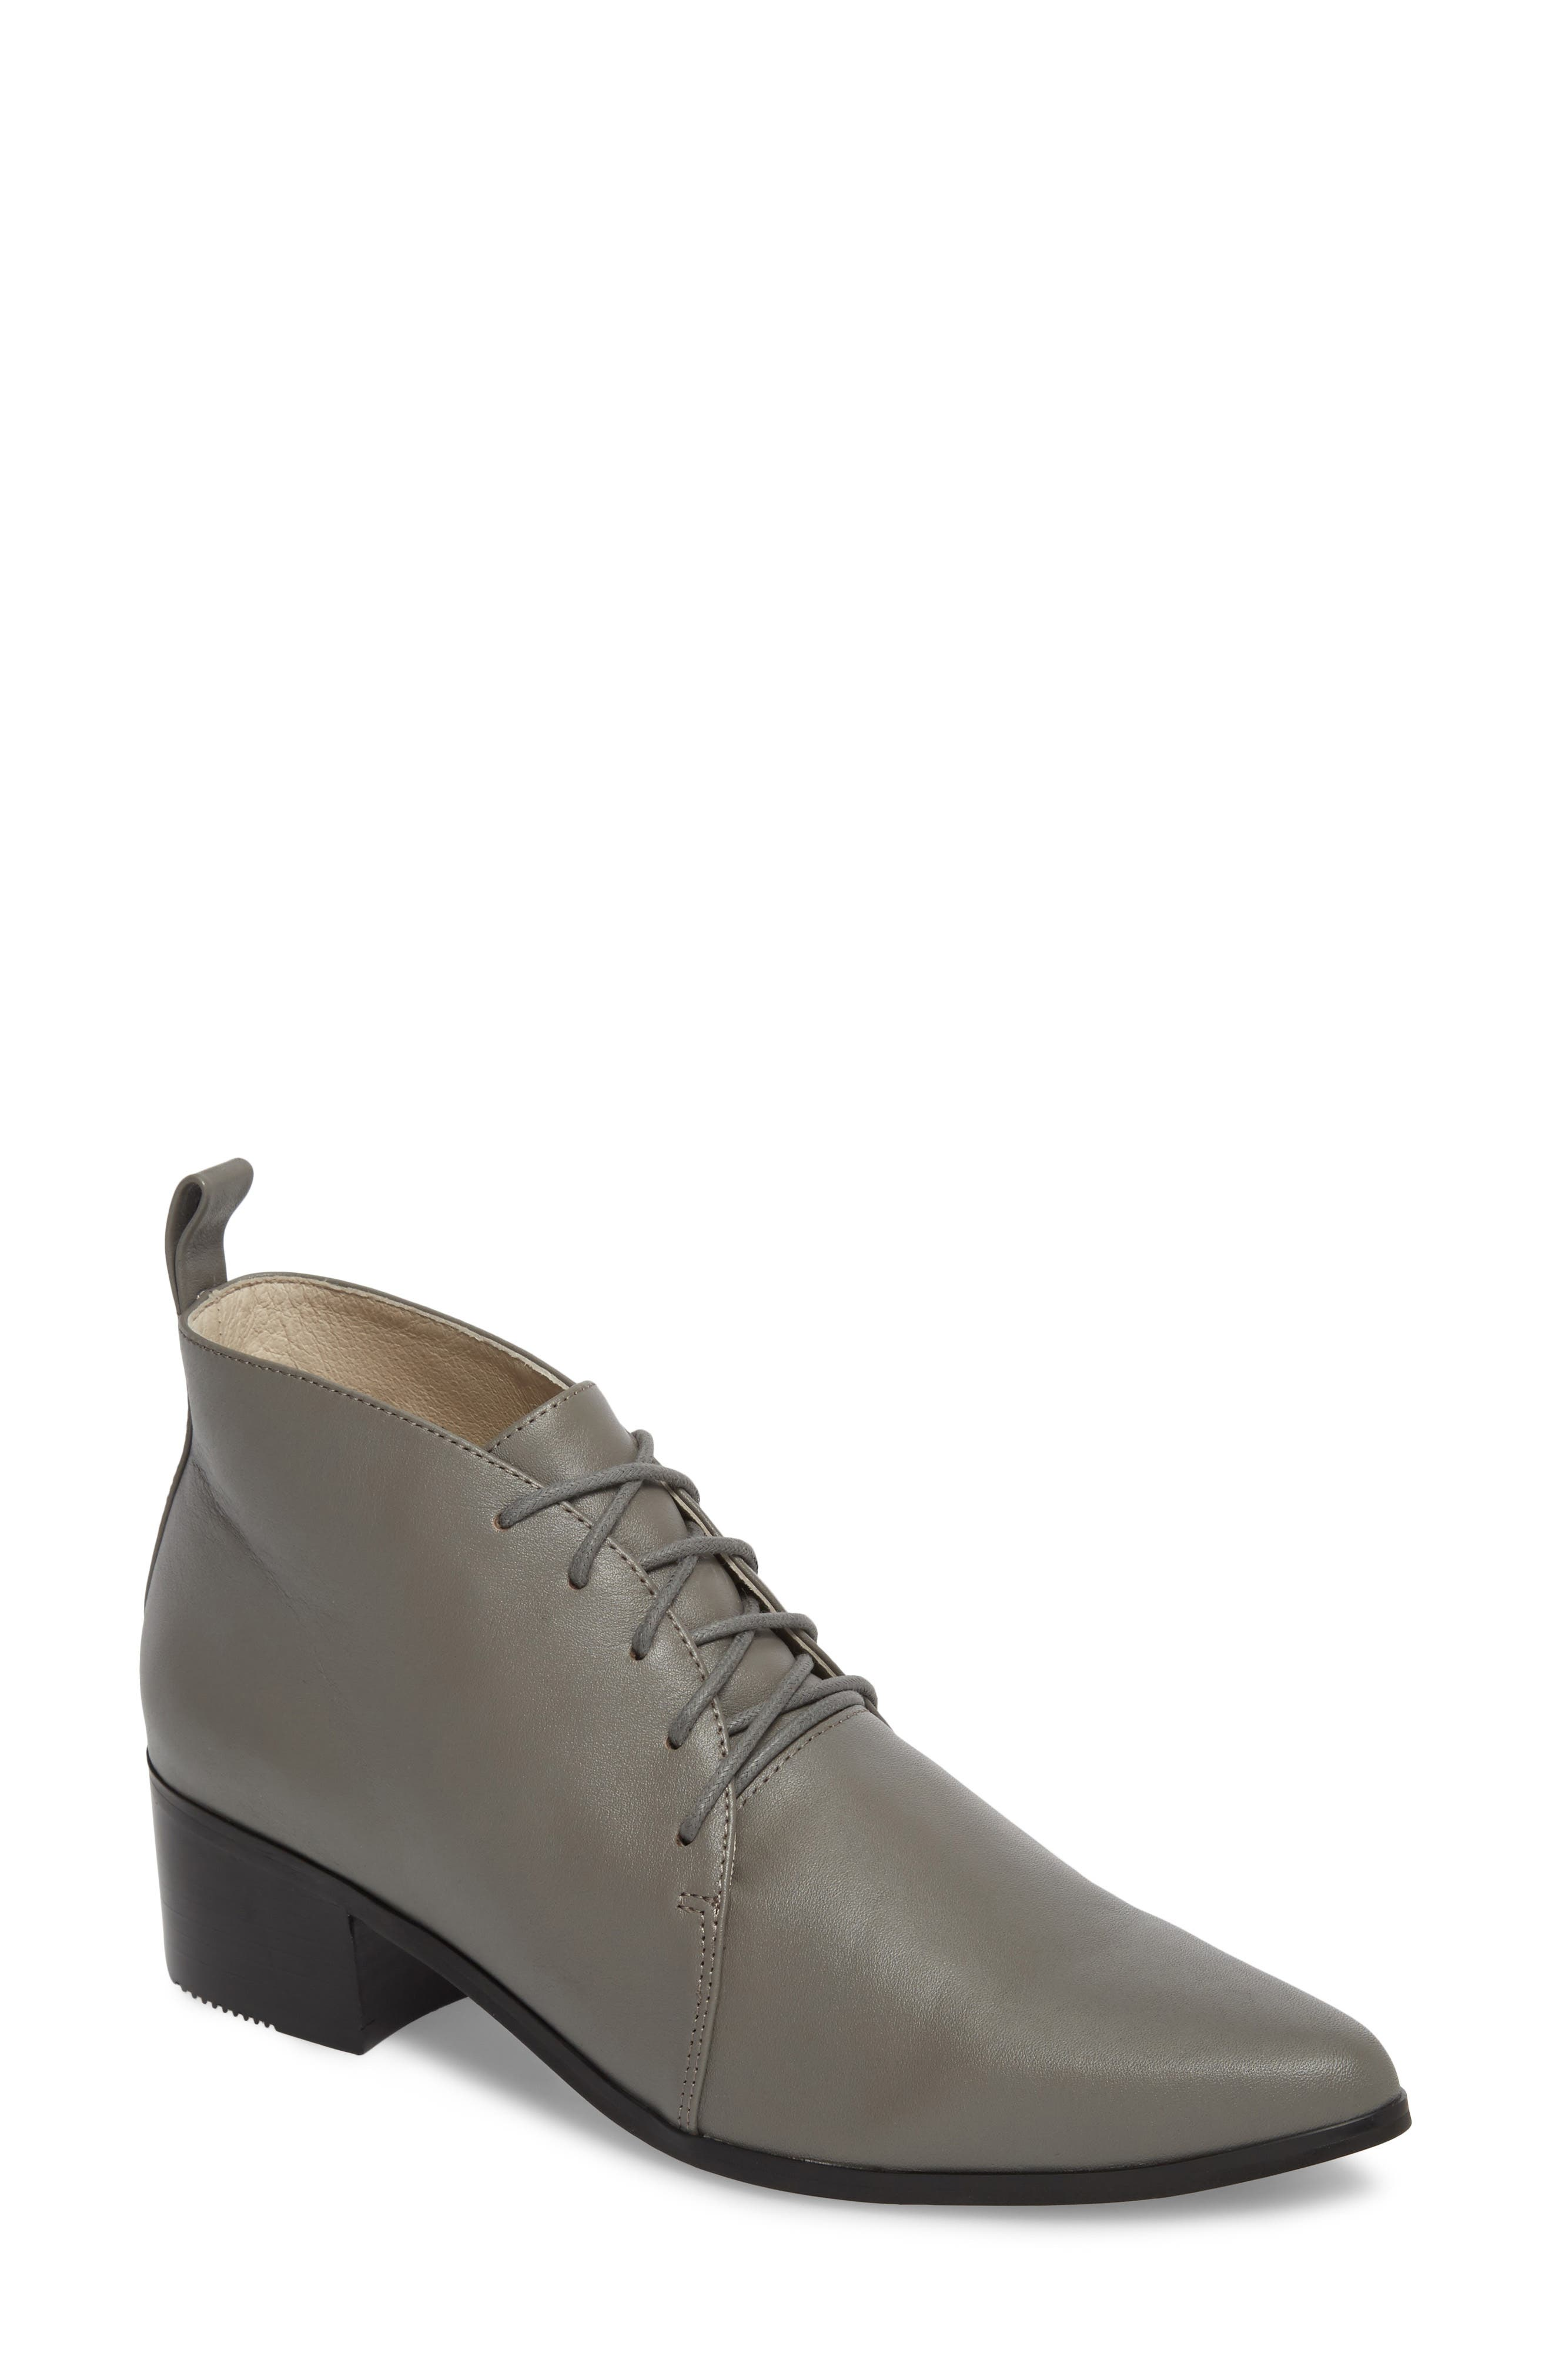 Waverly Lace-Up Bootie,                             Main thumbnail 1, color,                             035